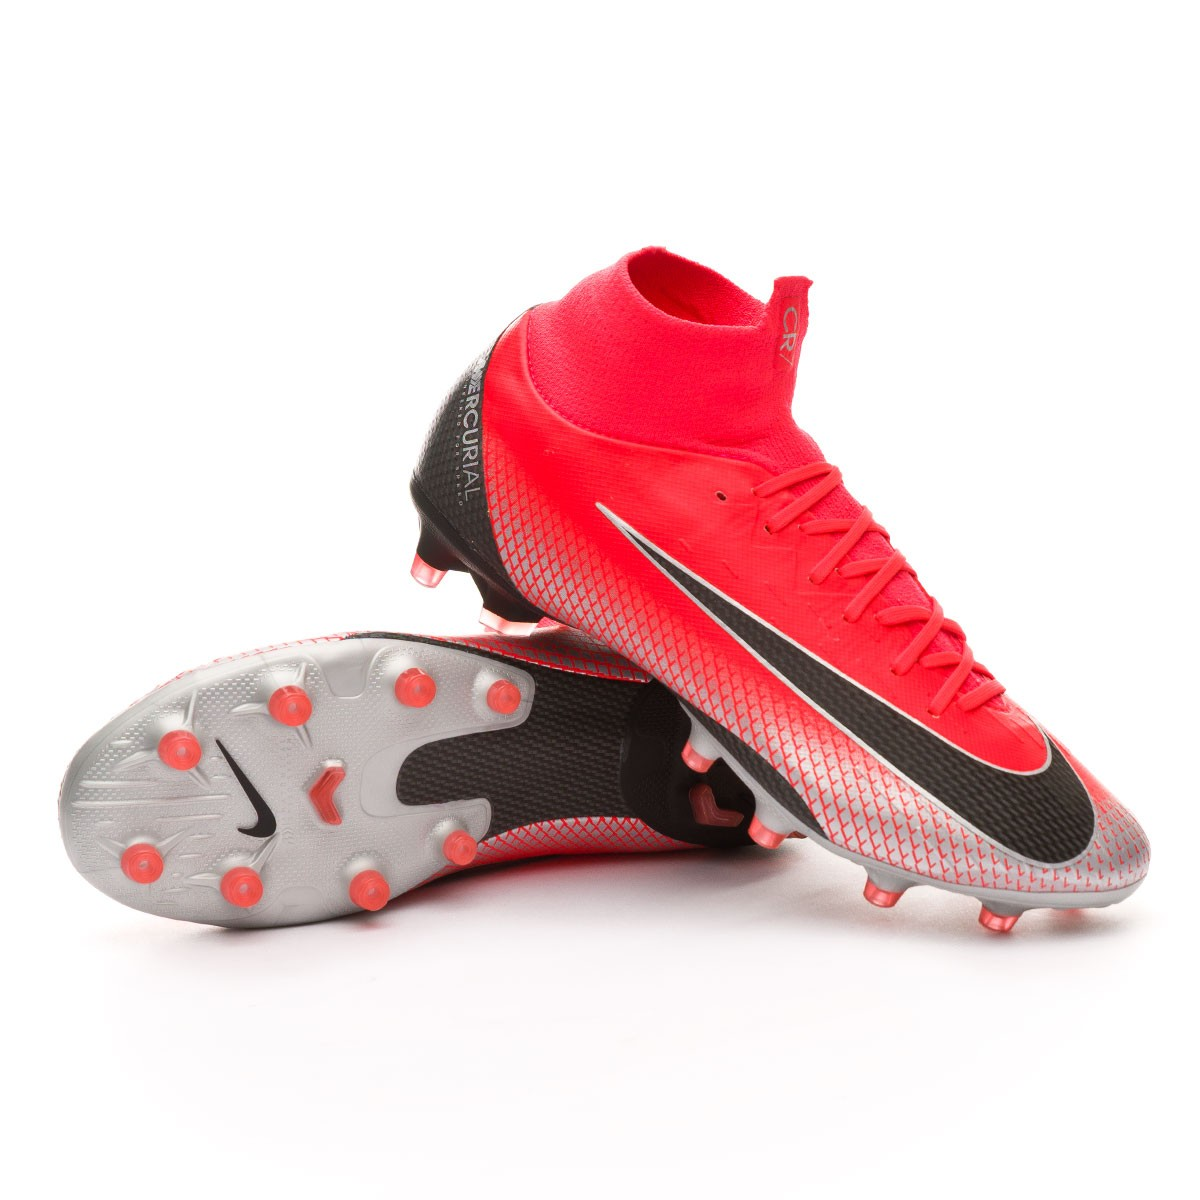 SCARPA CALCIO Nike Mercurial Superfly VI Pro CR7 FG